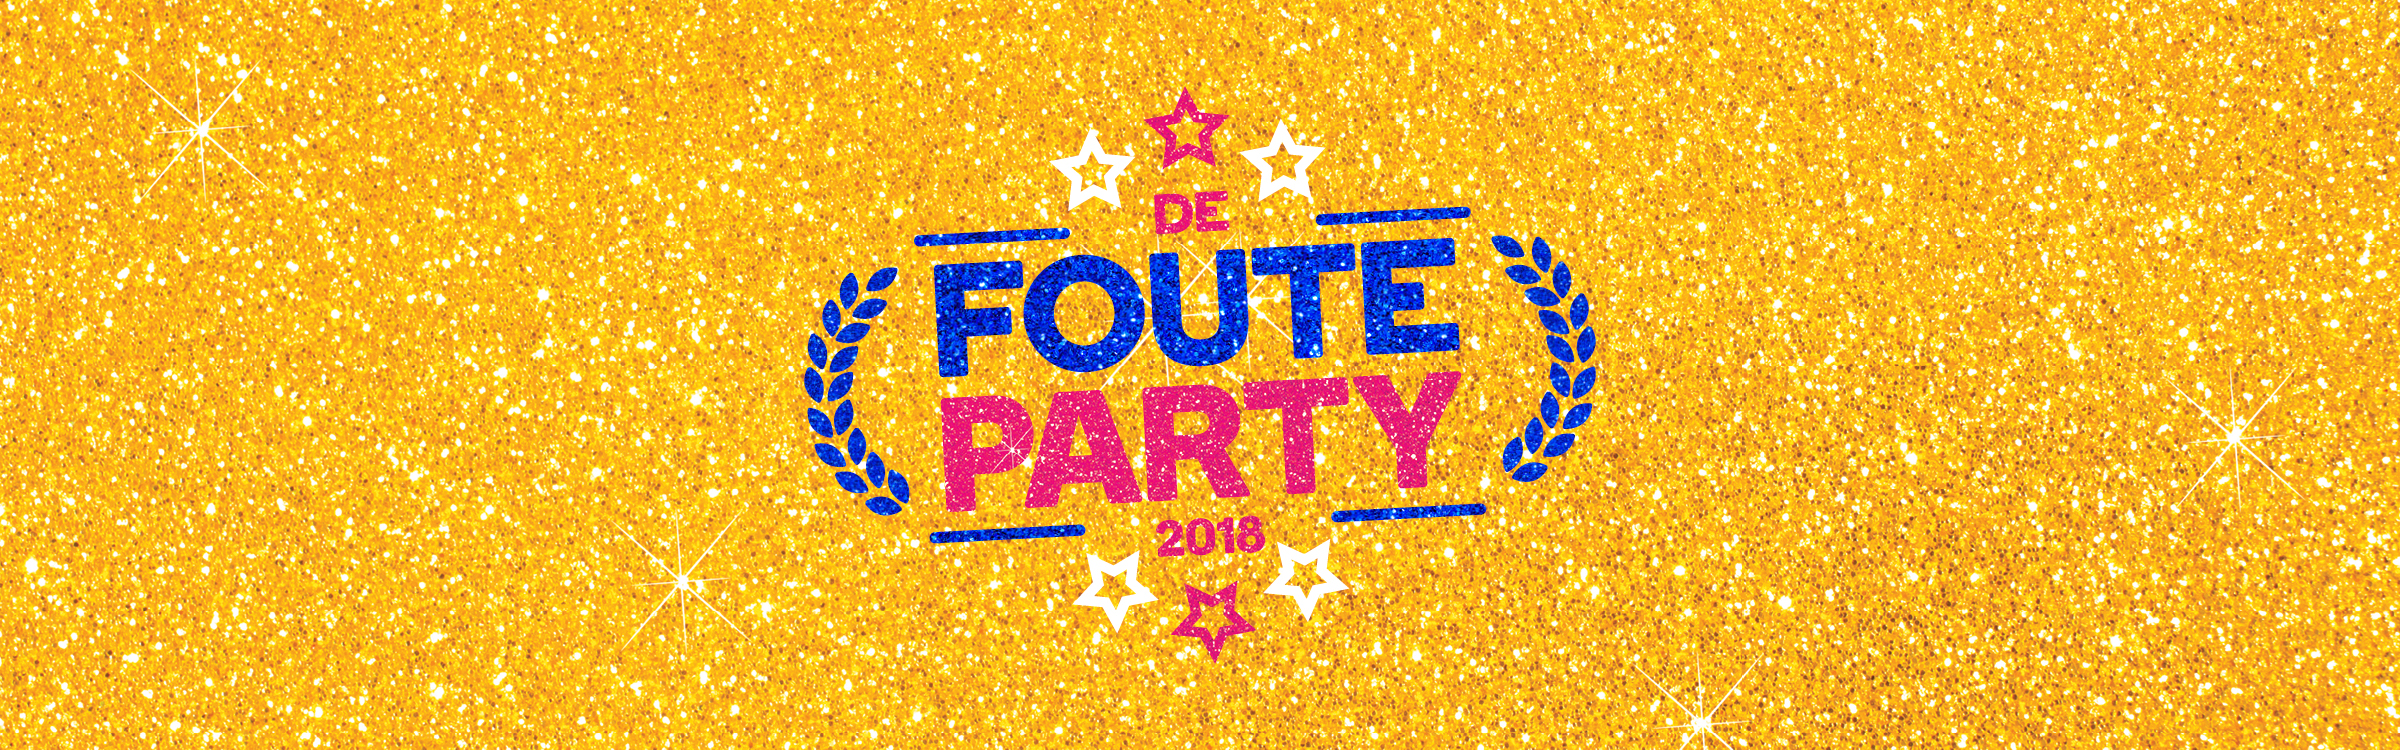 Foute party 2400x750